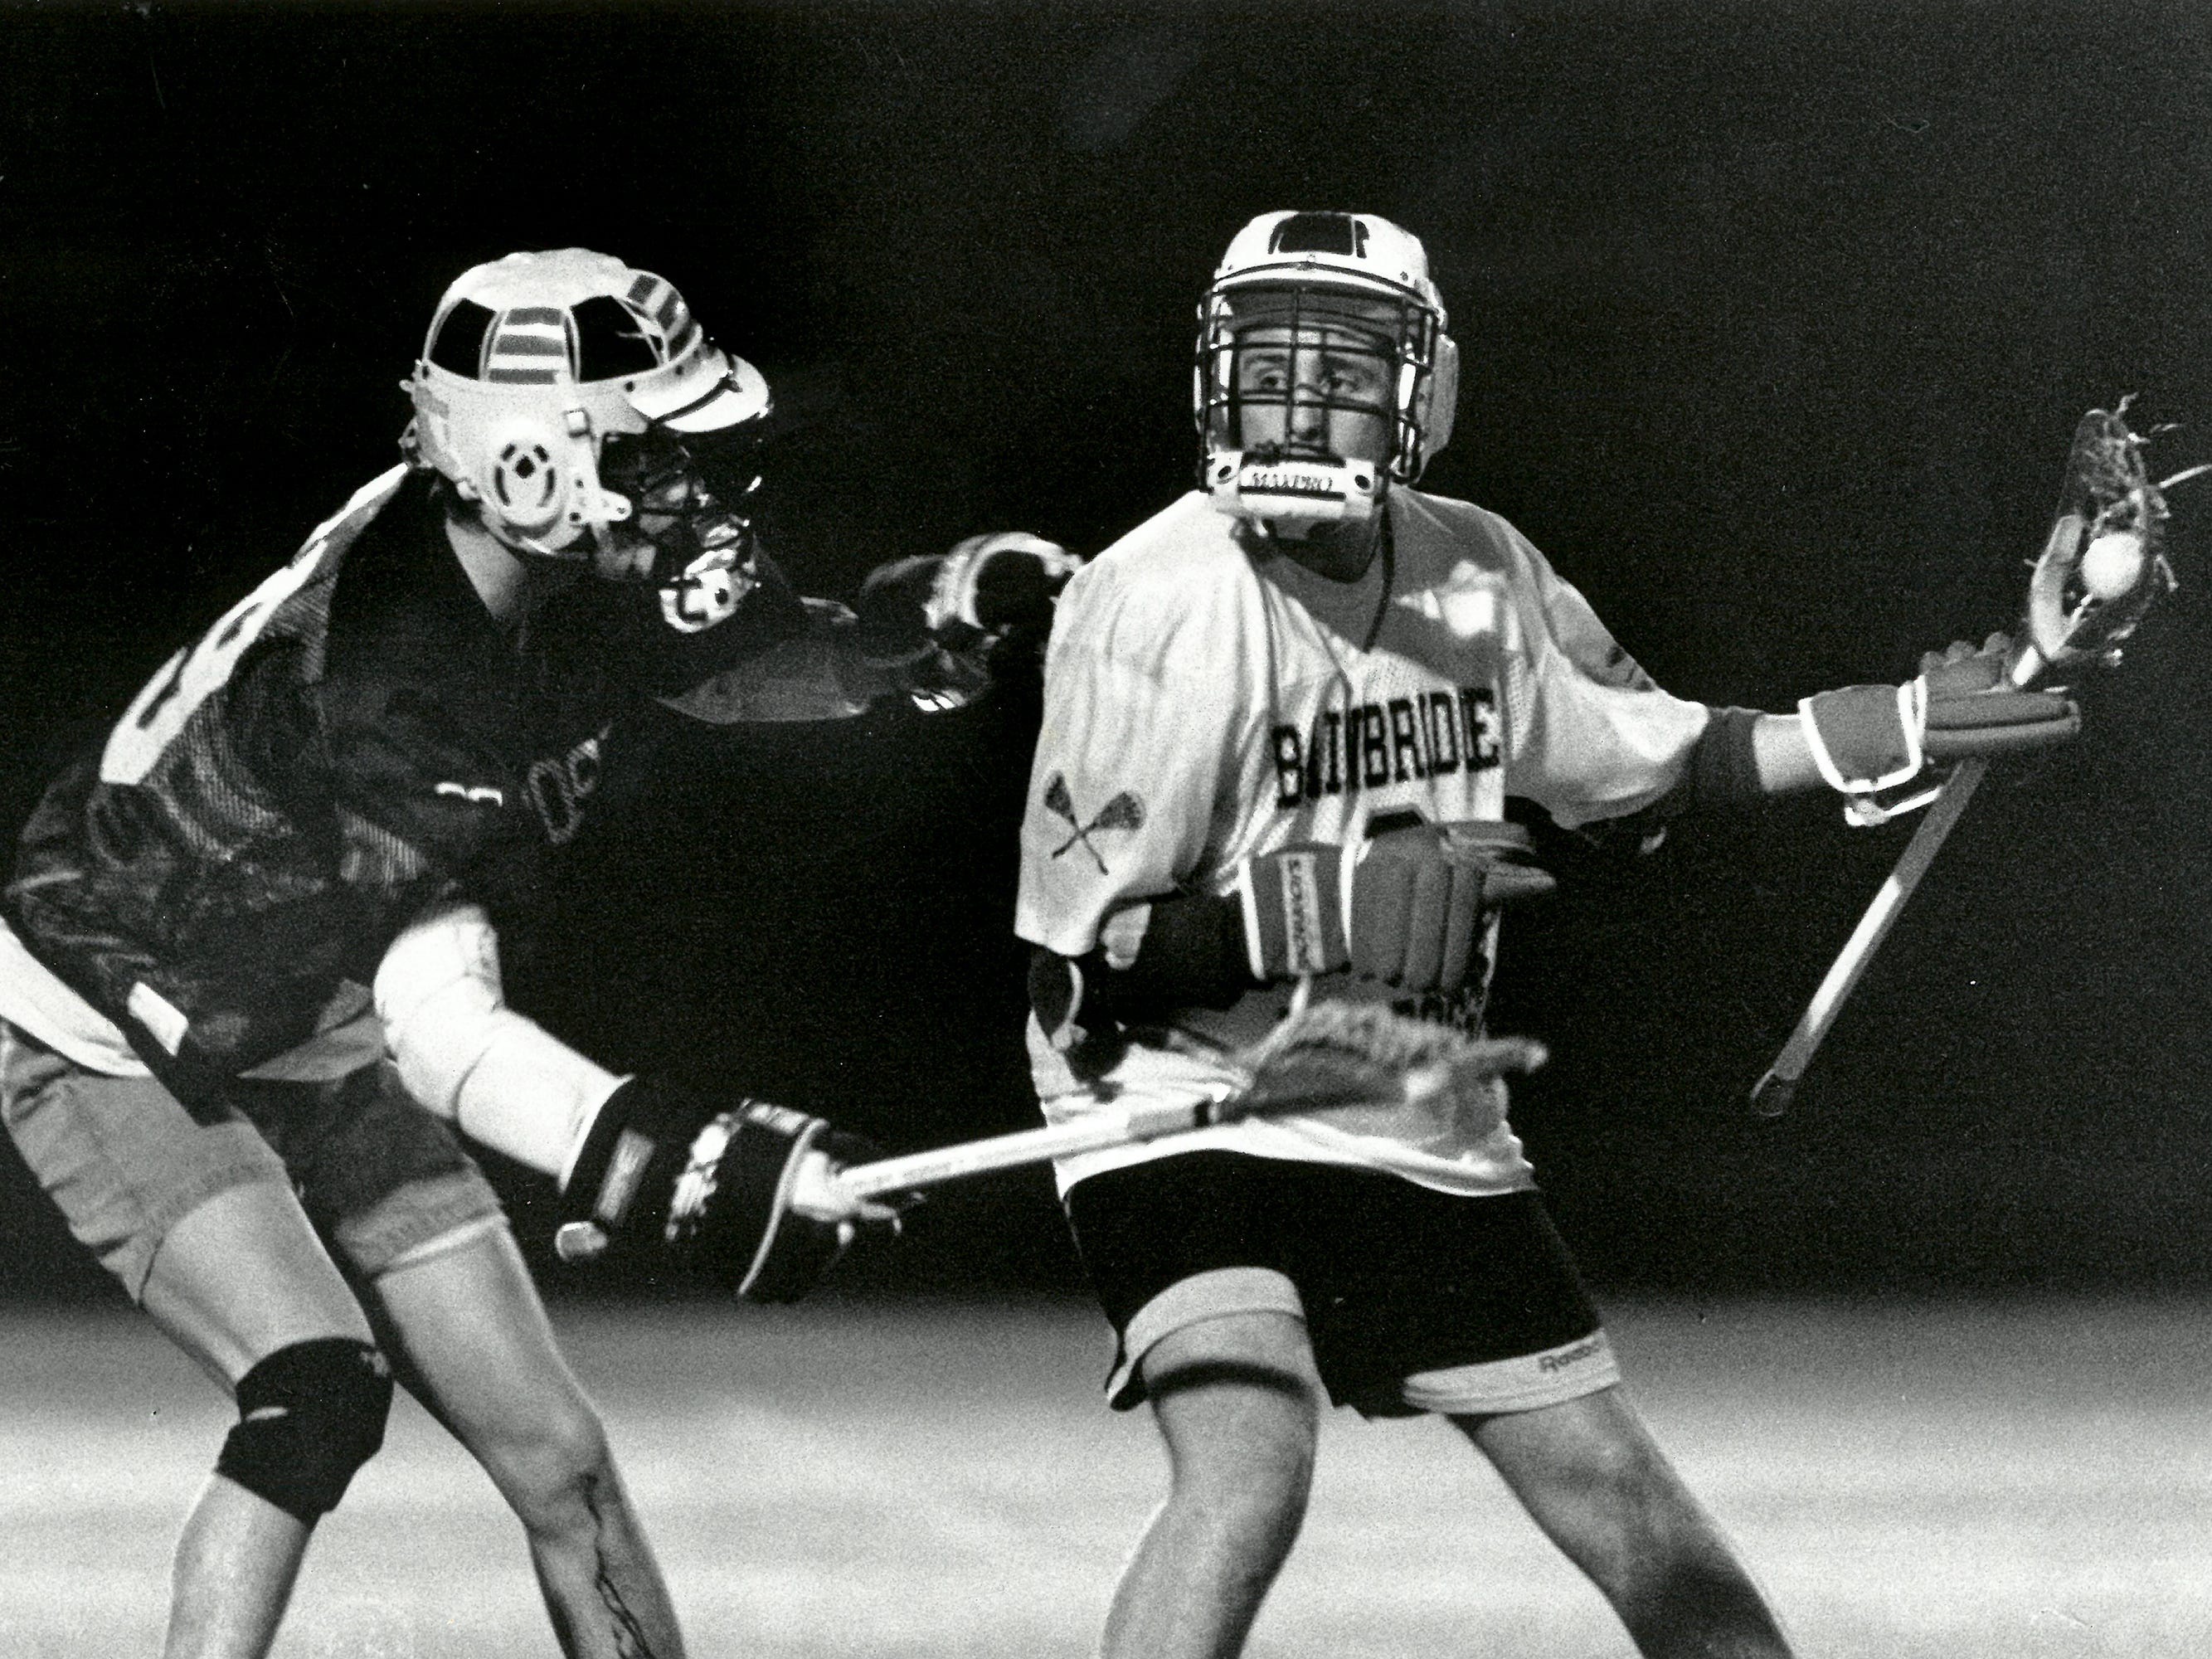 03/31/92